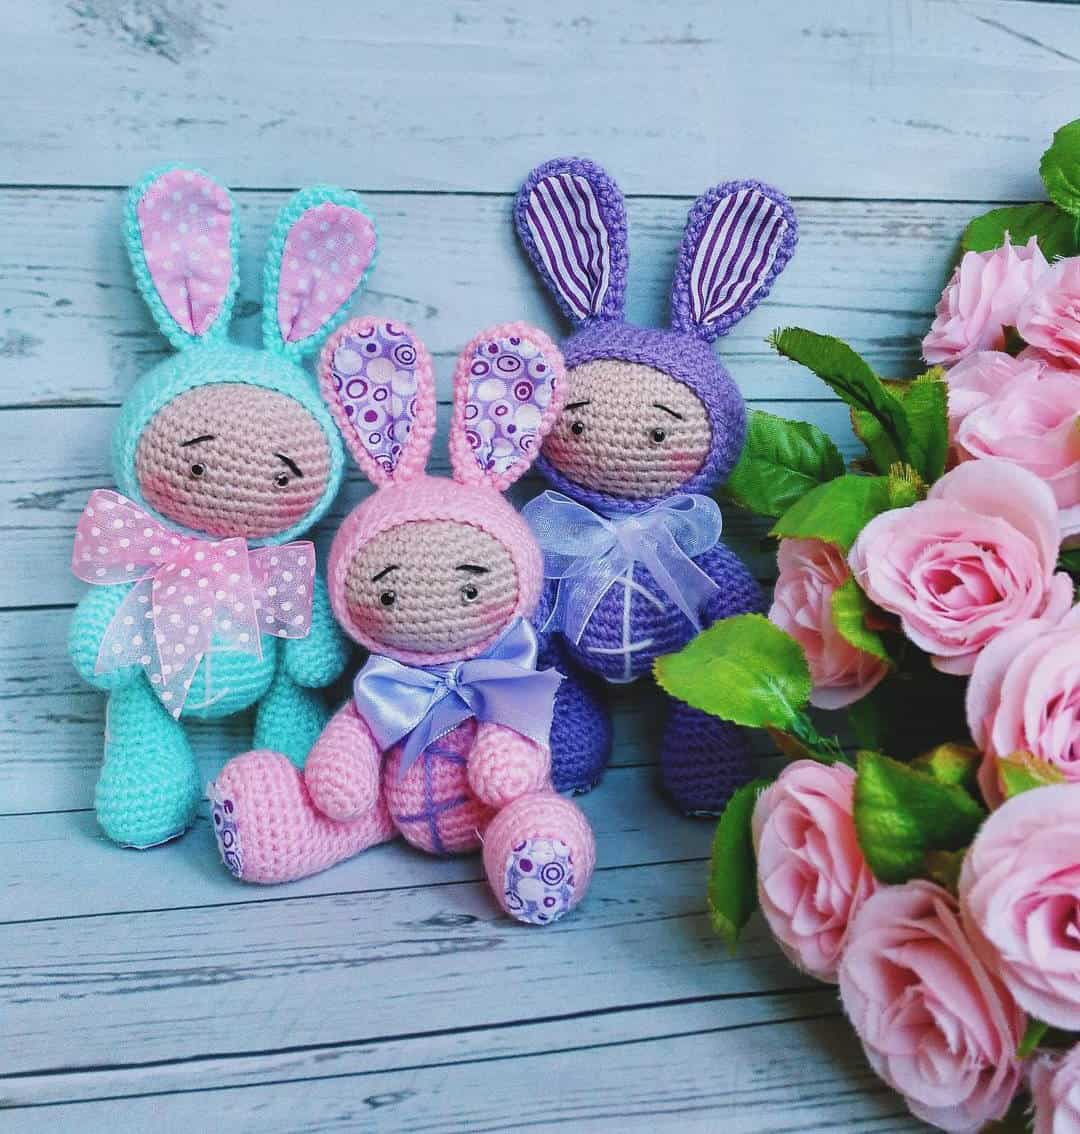 Amigurumi baby dolls in bunny costumes